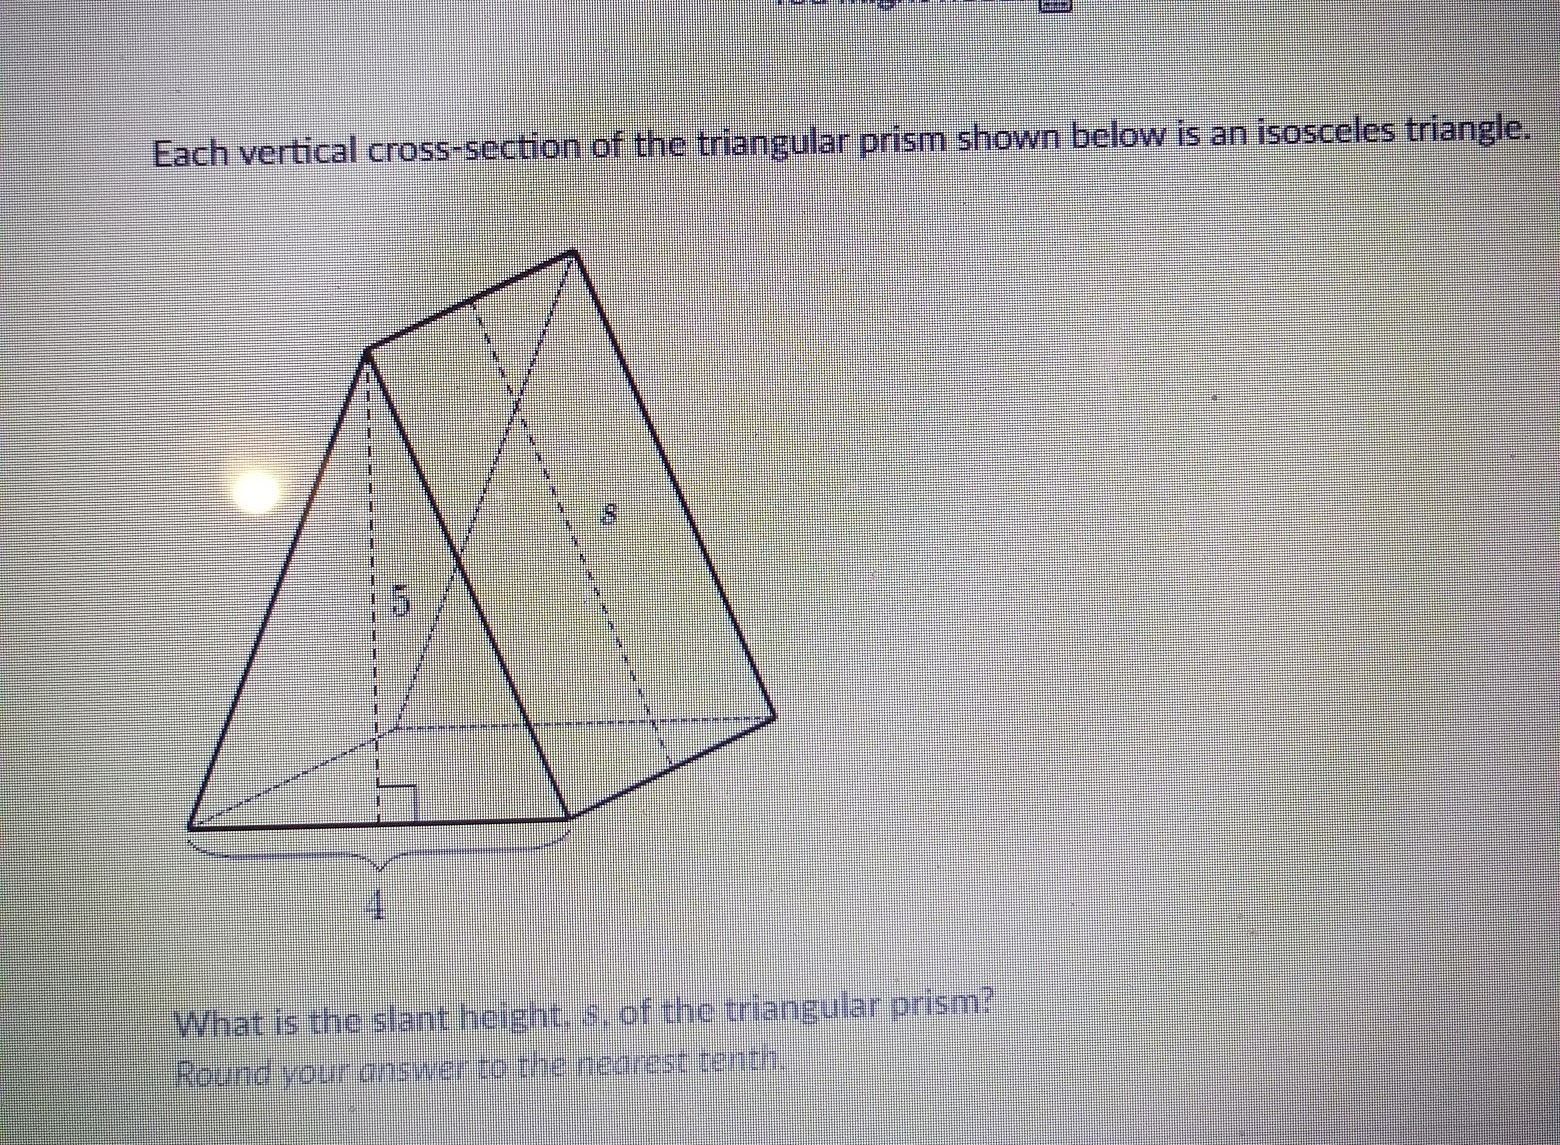 What Is The Slant Height S Of The Triangular Prism